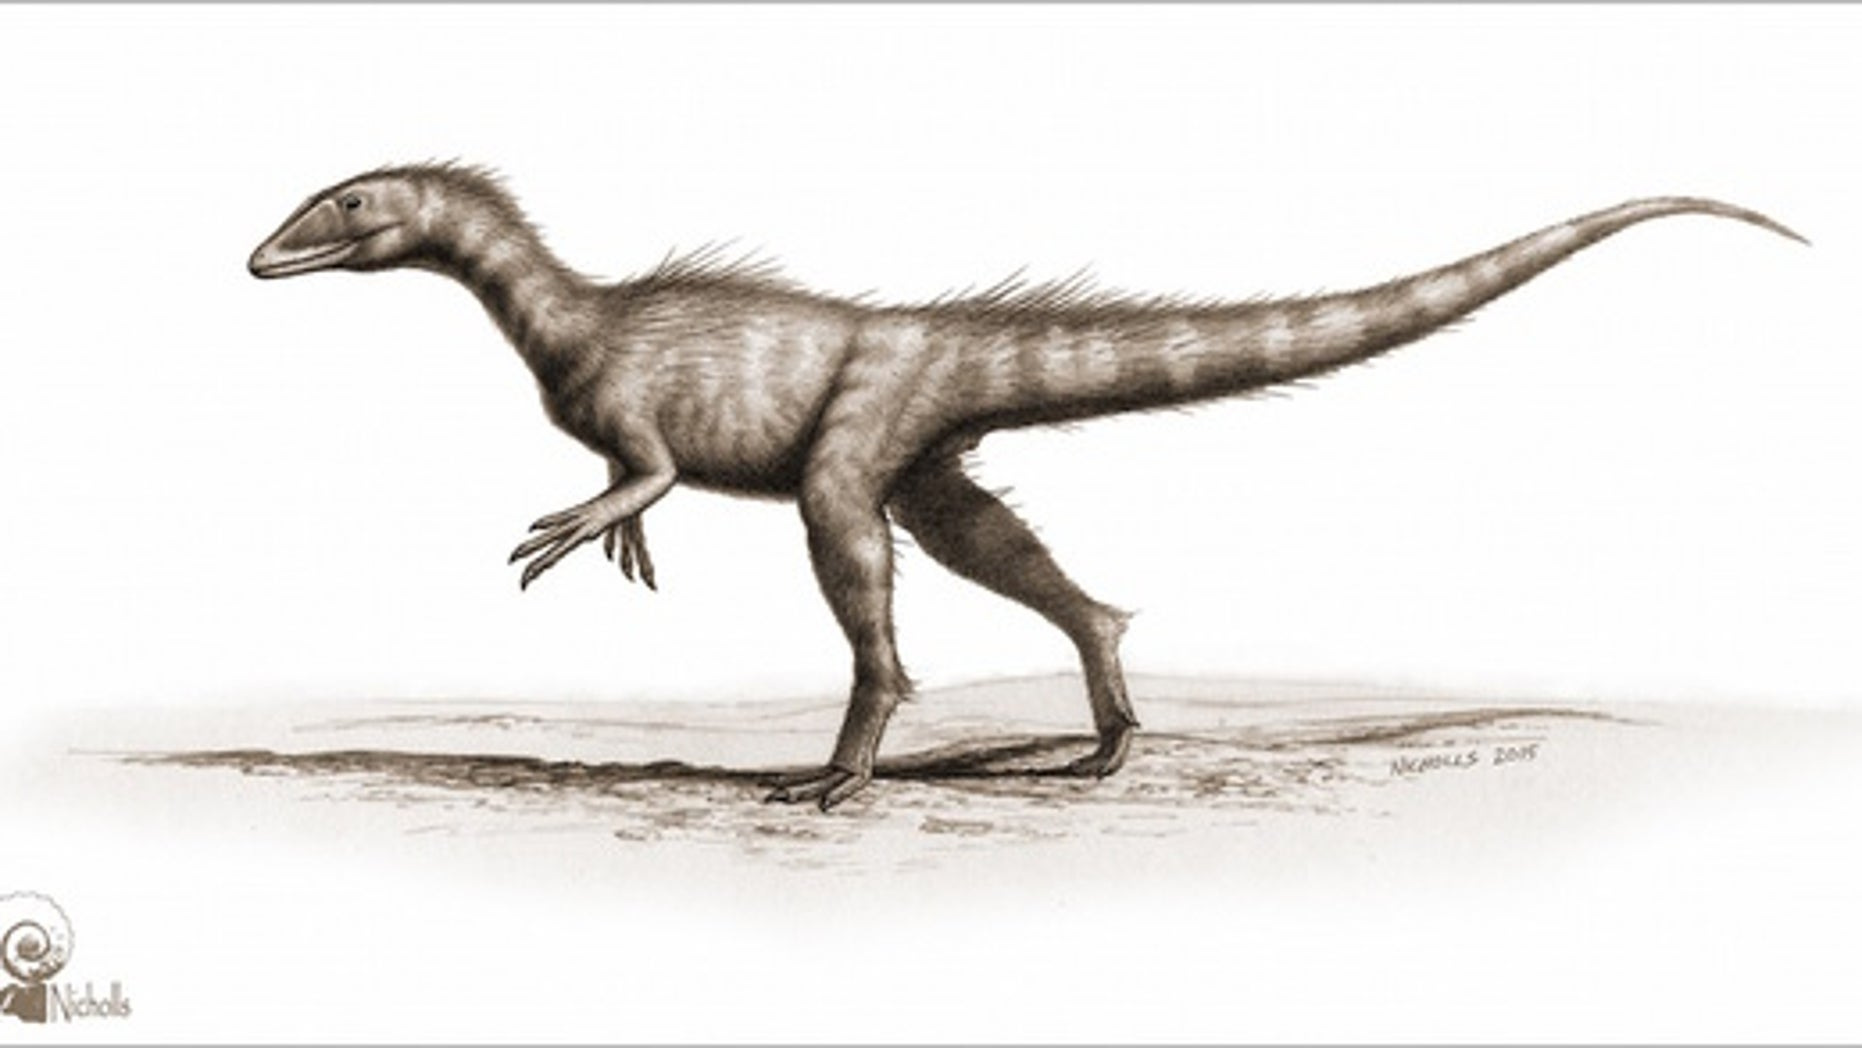 An illustration of the meat-eating dinosaur <i>Dracoraptor hanigani</i>, which might be the earliest known dinosaur discovered in the United Kingdom.